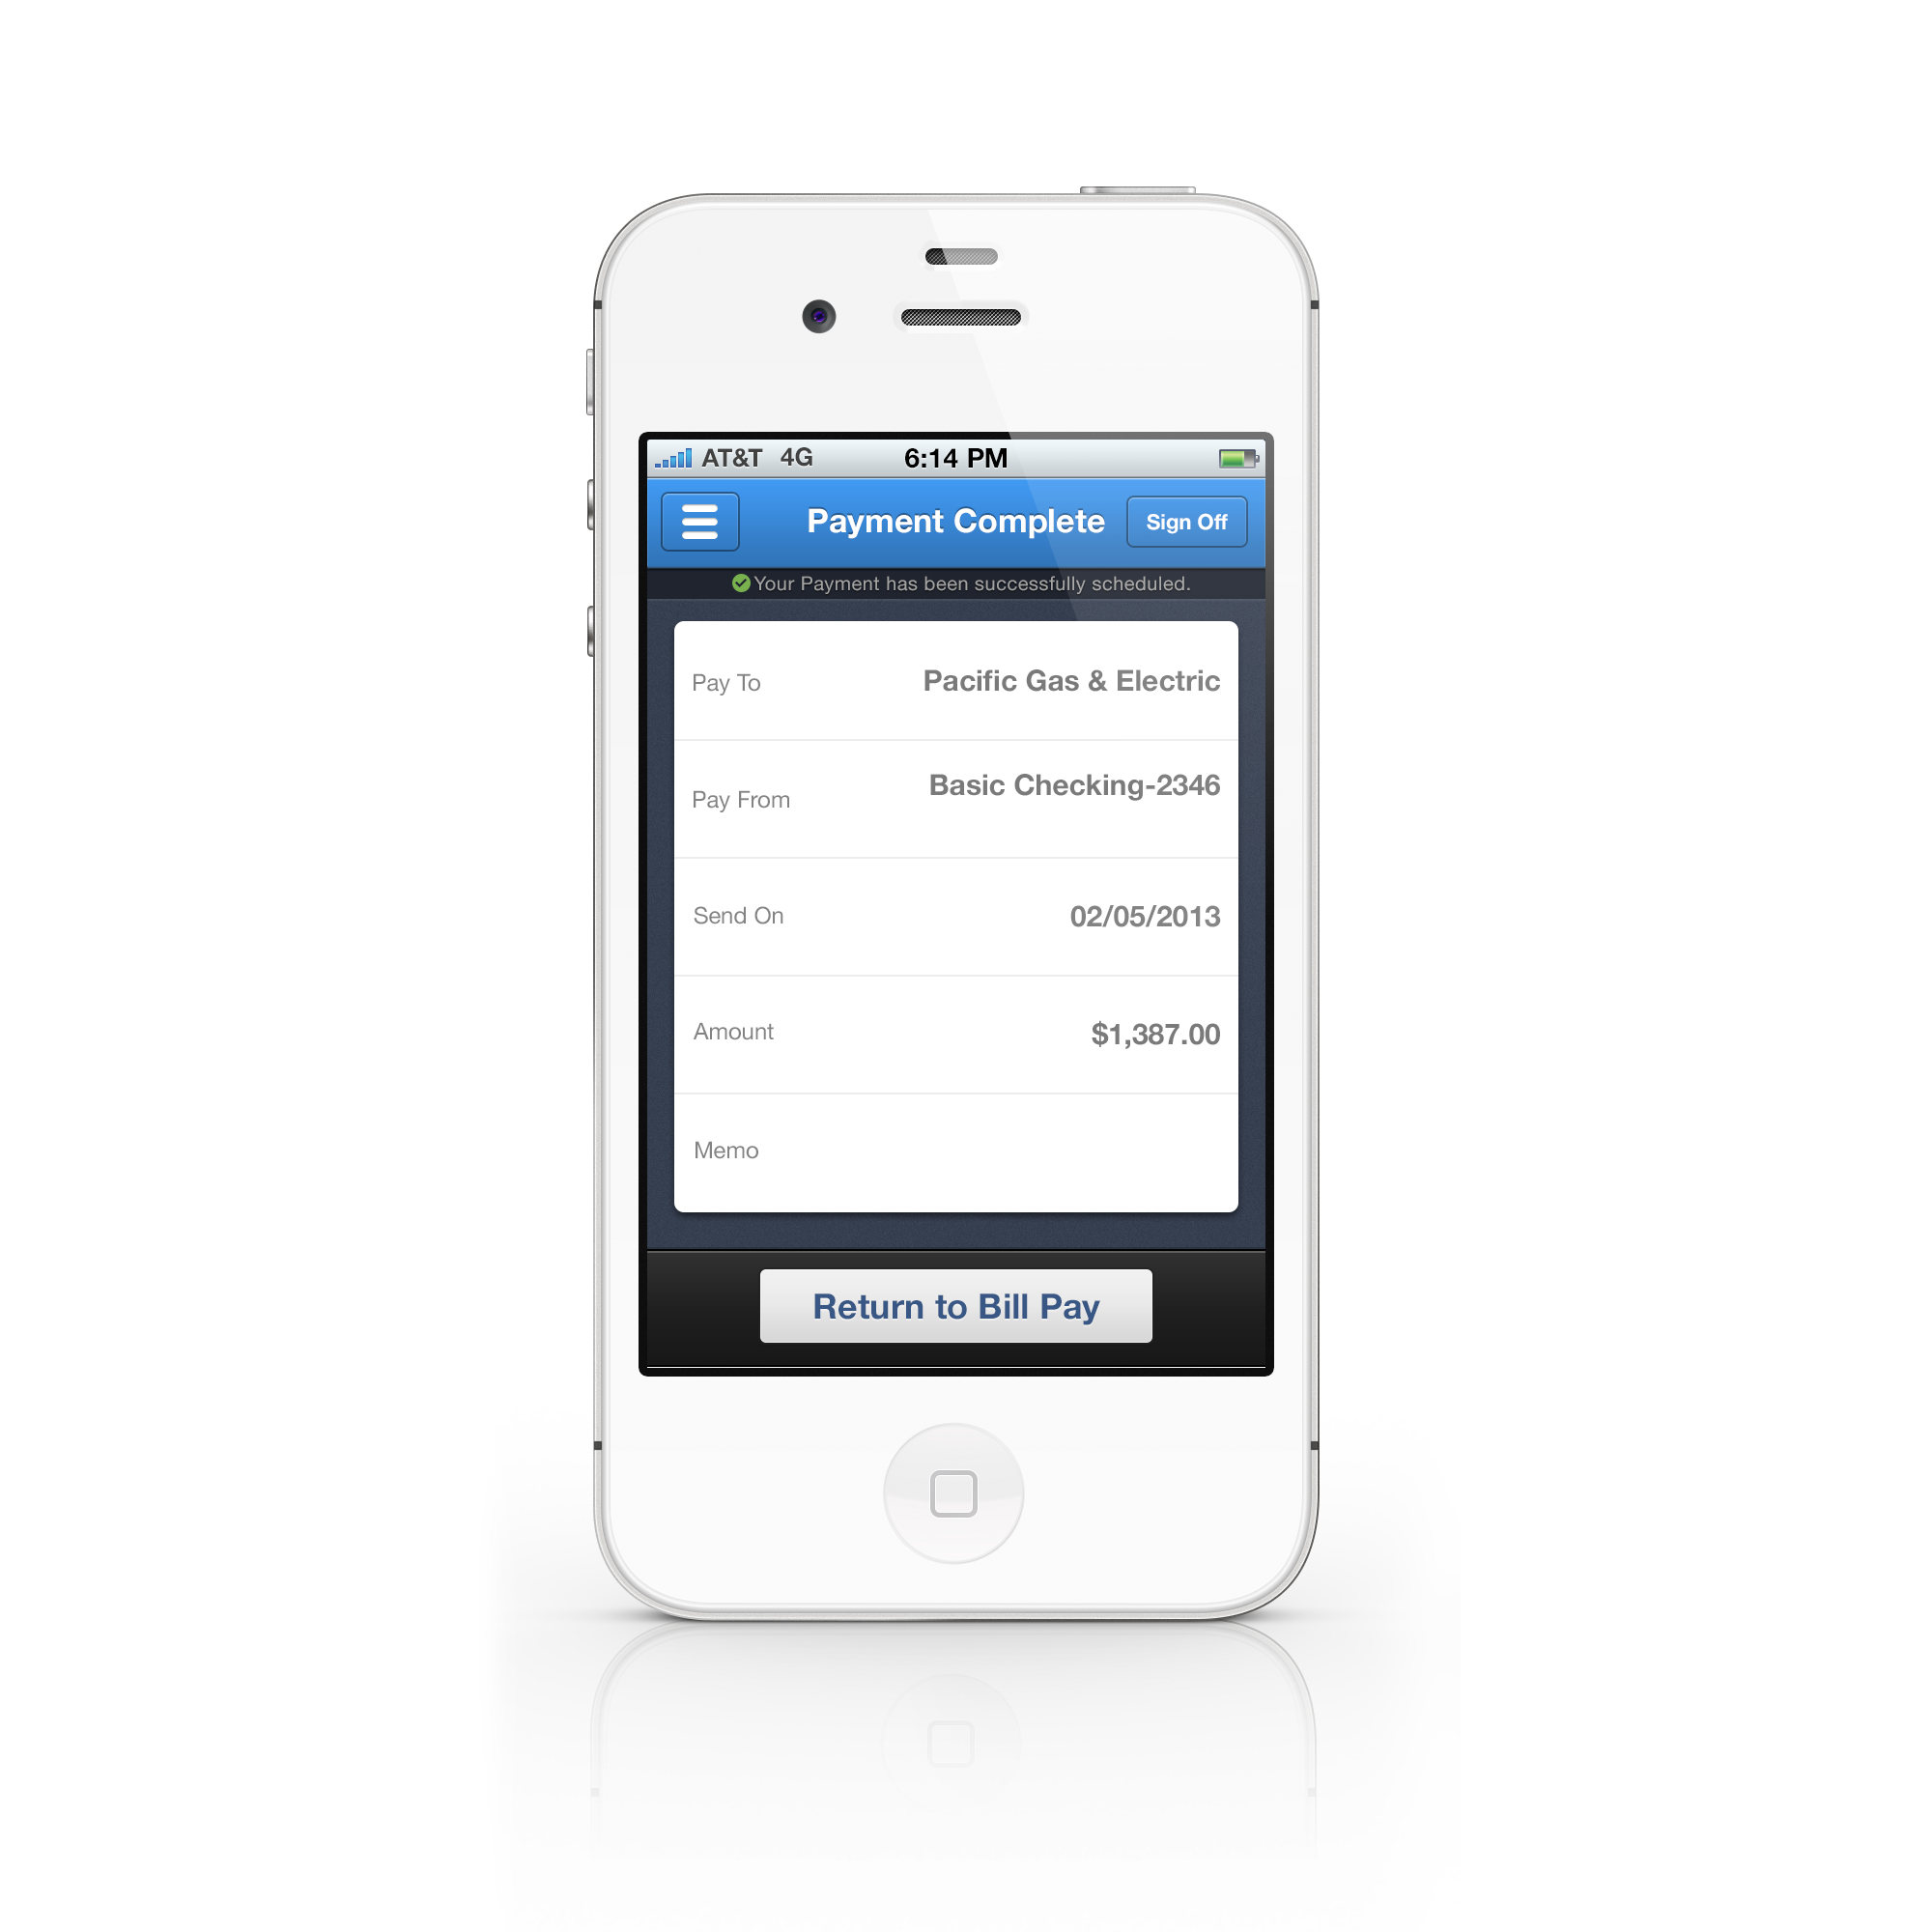 Mobile_Banking_iPhone_4_0017_Layer-Comp-18.png